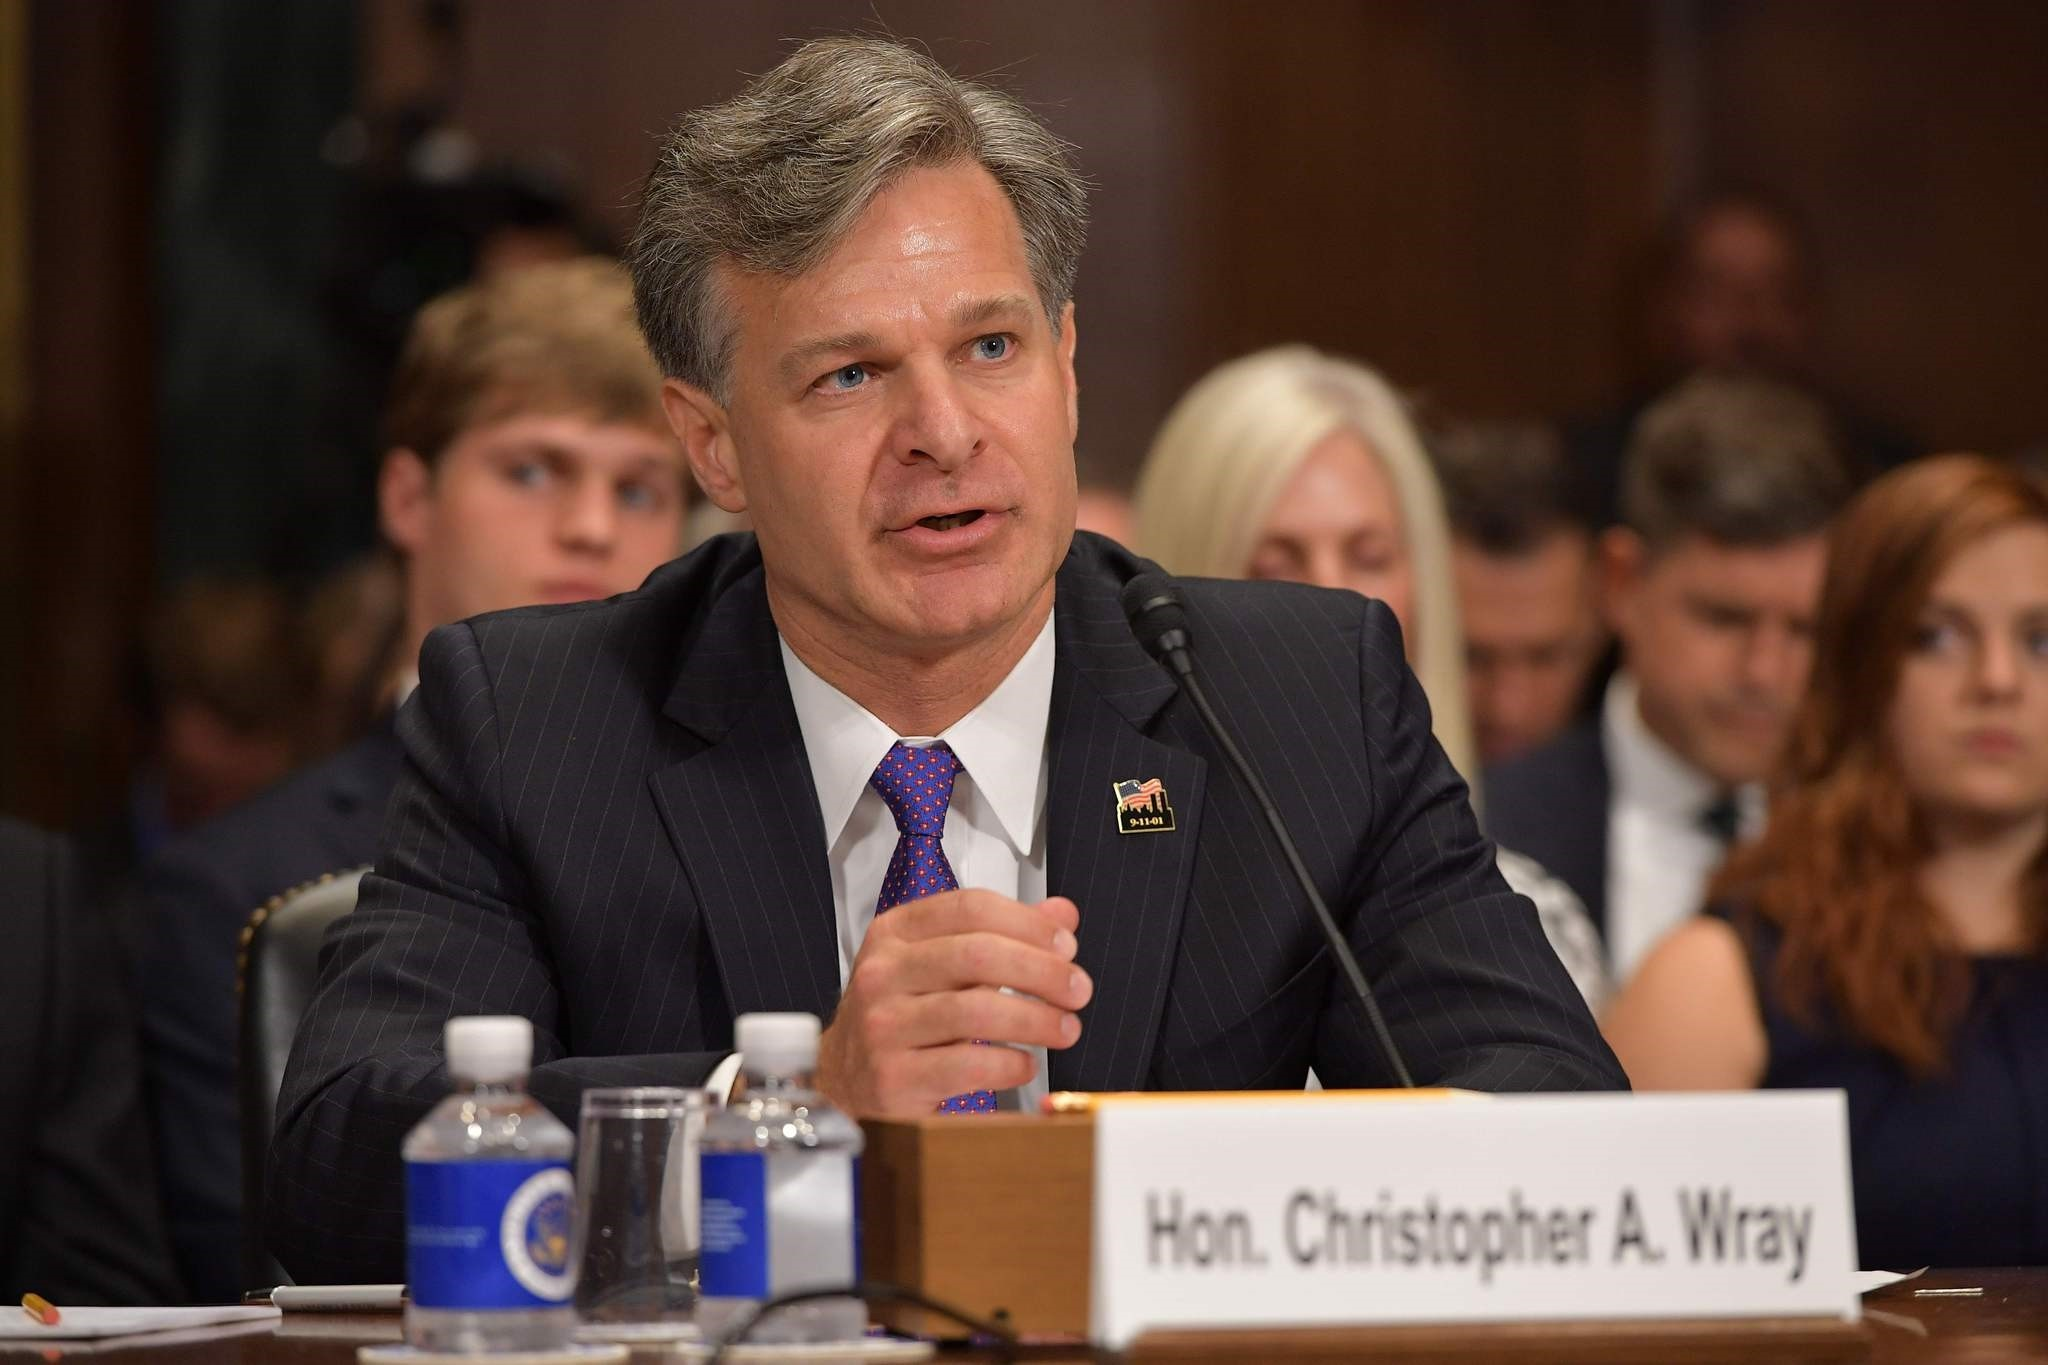 Christopher Wray testifies before the Senate Judiciary Committee on his nomination to be the director of the Federal Bureau of Investigation on Capitol Hill on July 12, 2017. (EPA Photo)